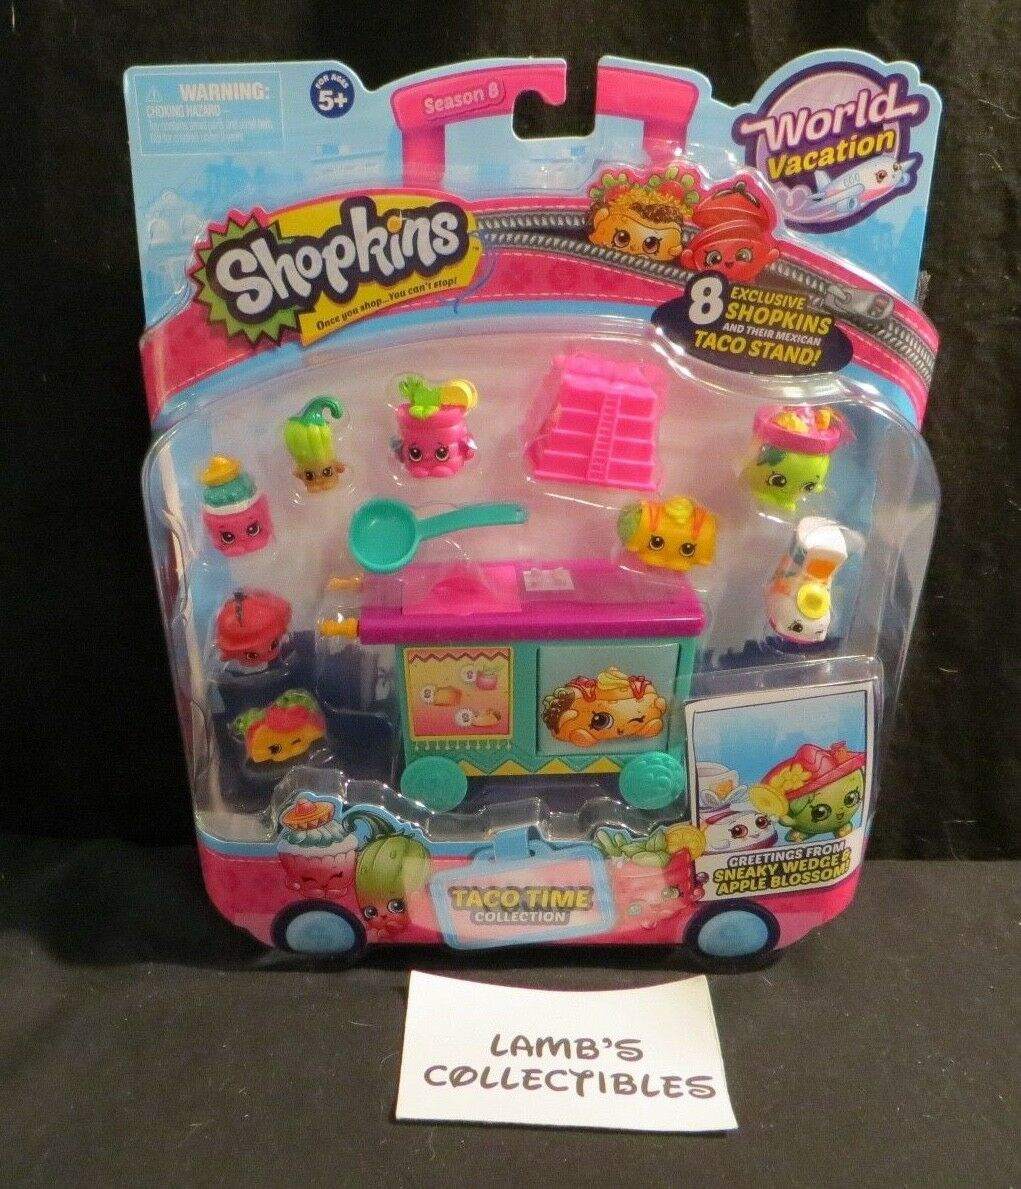 Primary image for Shopkins World Vacation 8 pack Taco Time collection exclusive toy figures